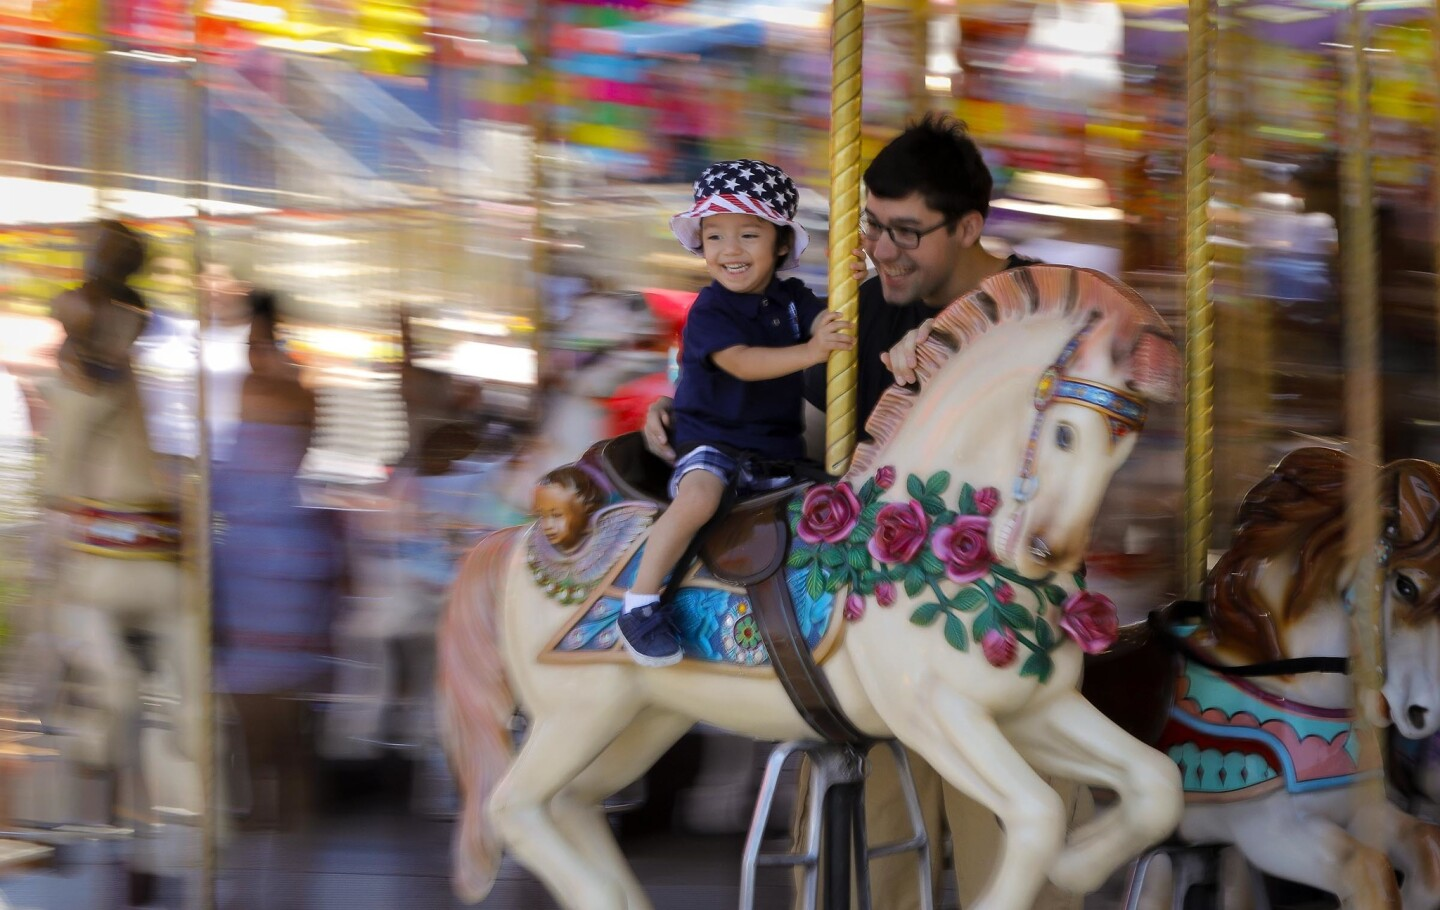 Two-year-old Leo Vannostrand, left, gets a ride on the carousel with his dad, John Vannostrand, right, on the final day of the 2018 San Diego County Fair.